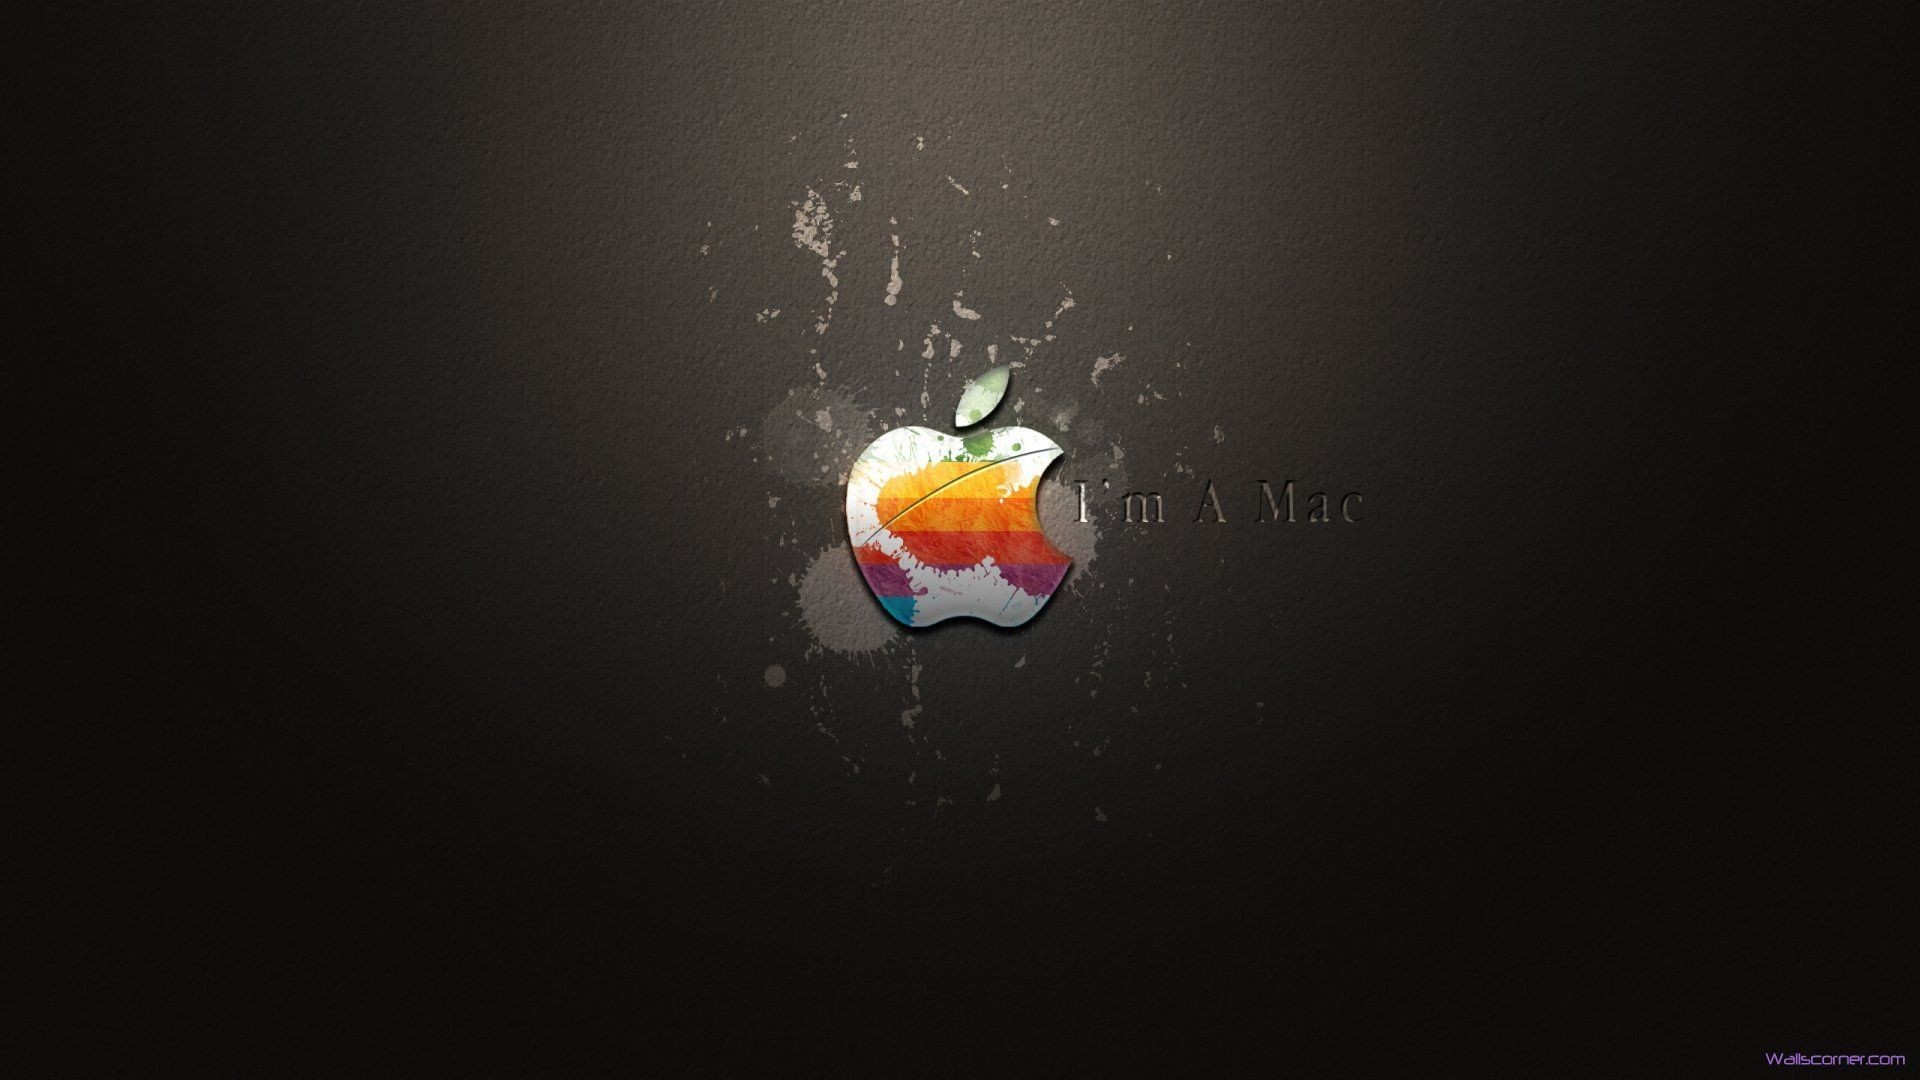 Iphone Android Desktop: 36+ Apple Wallpapers ·① Download Free Cool HD Backgrounds